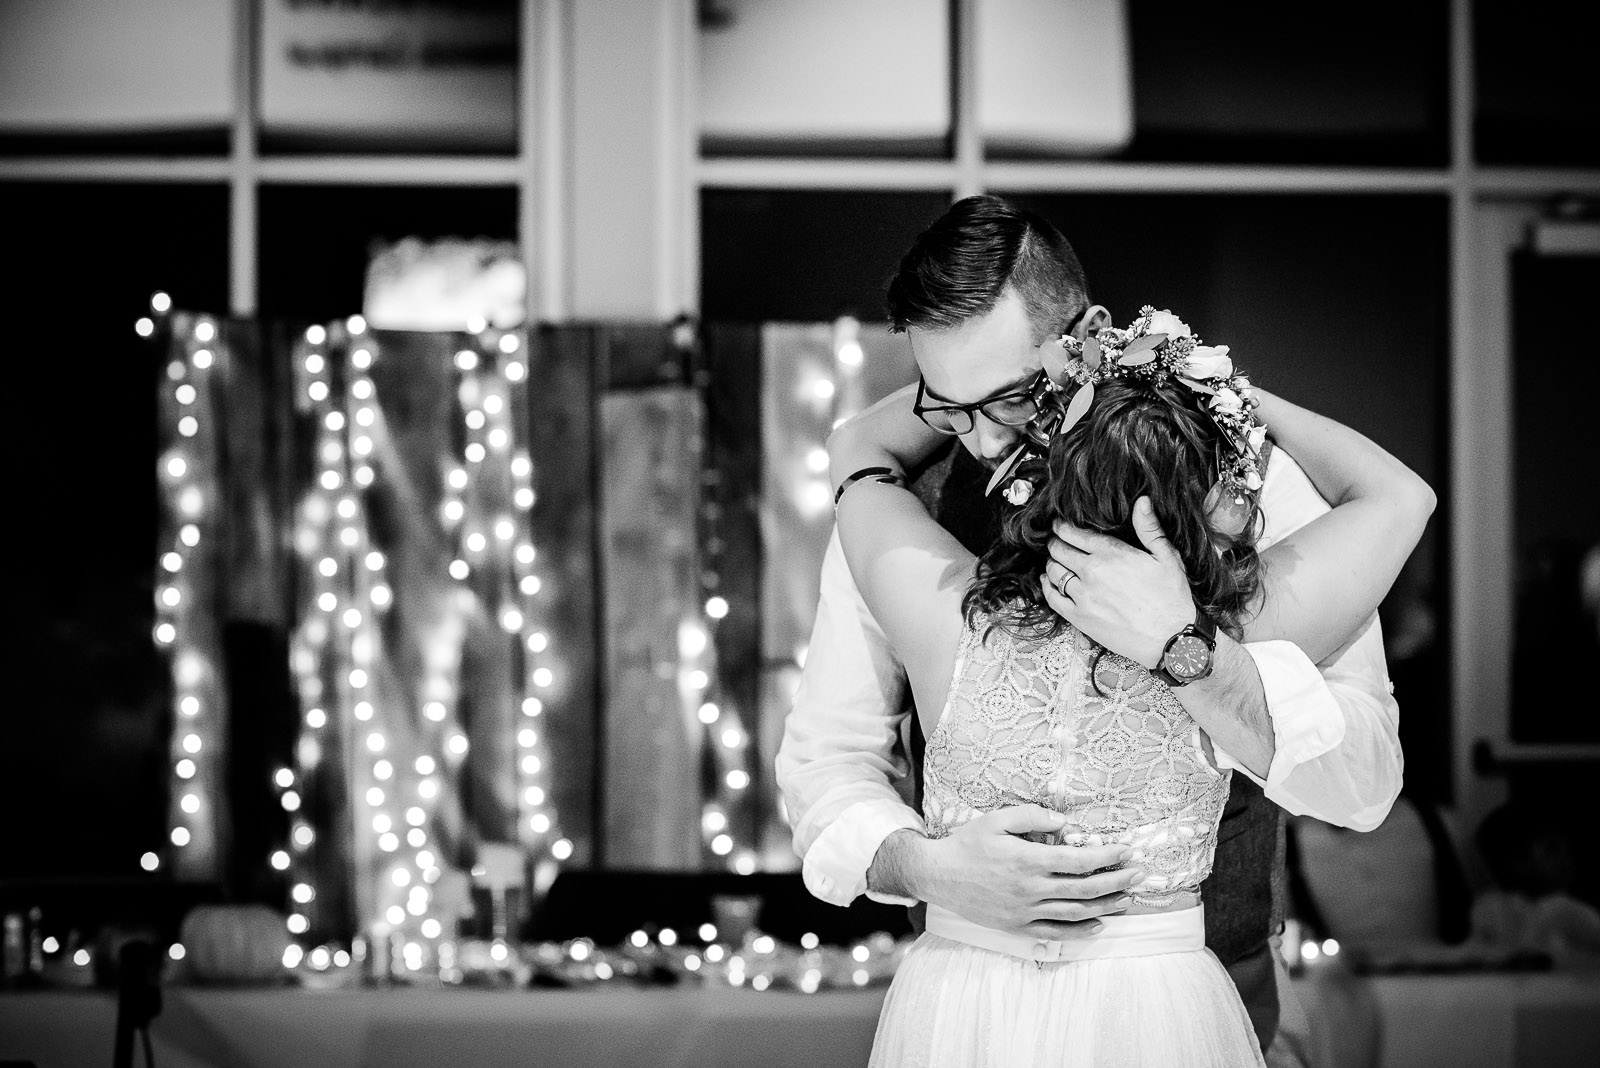 Eric_and_Christy_Photography_Blog_2017_Best_Moments-48